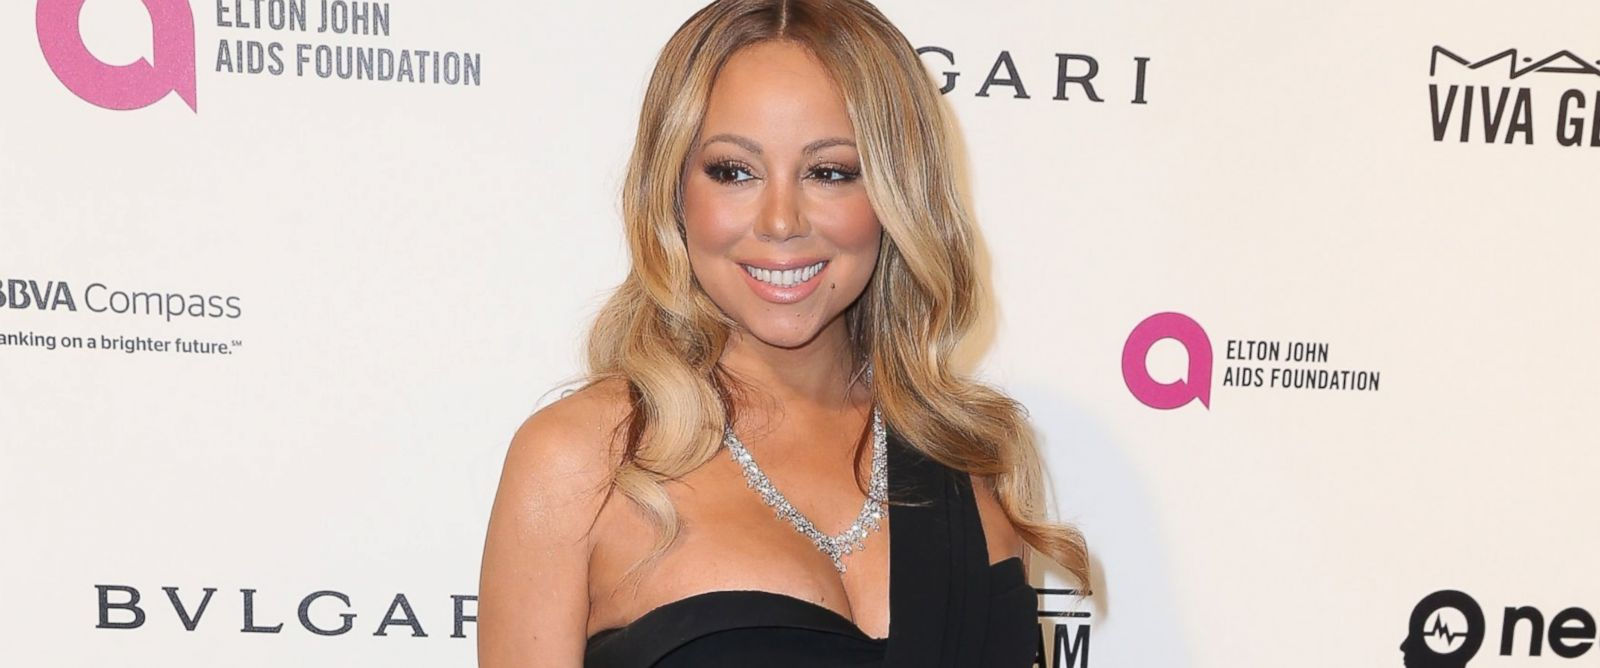 PHOTO: Mariah Carey attends the 24th Annual Elton John AIDS Foundations Oscar Viewing Party, Feb. 28, 2016 in West Hollywood, Calif.